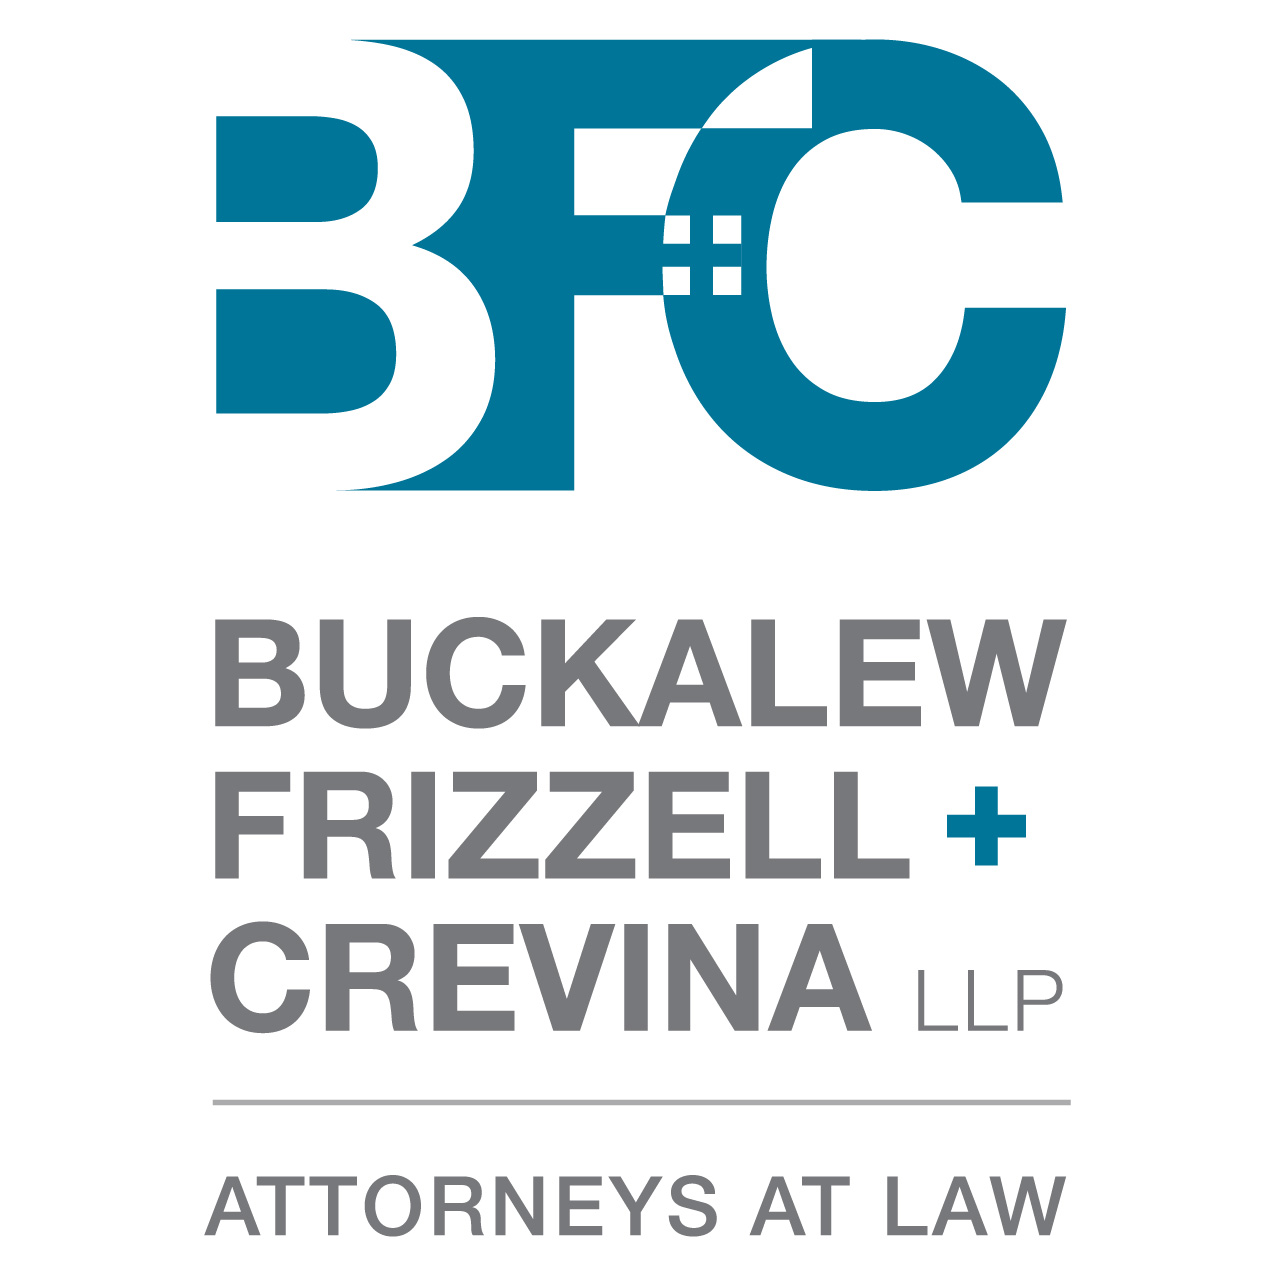 Buckalew, Frizzell & Crevina LLP